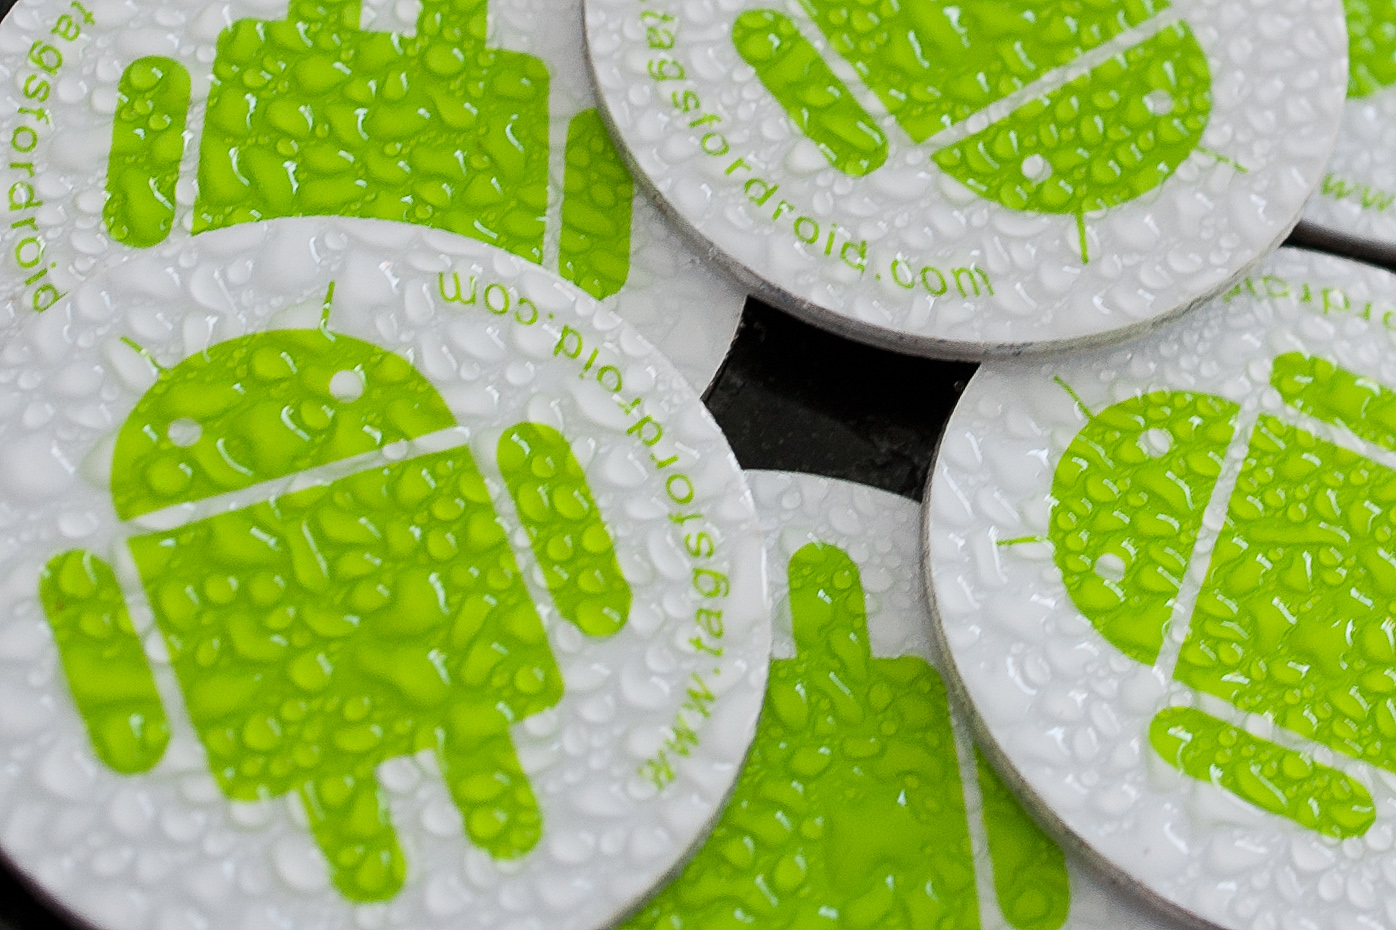 waterproof NFC tags